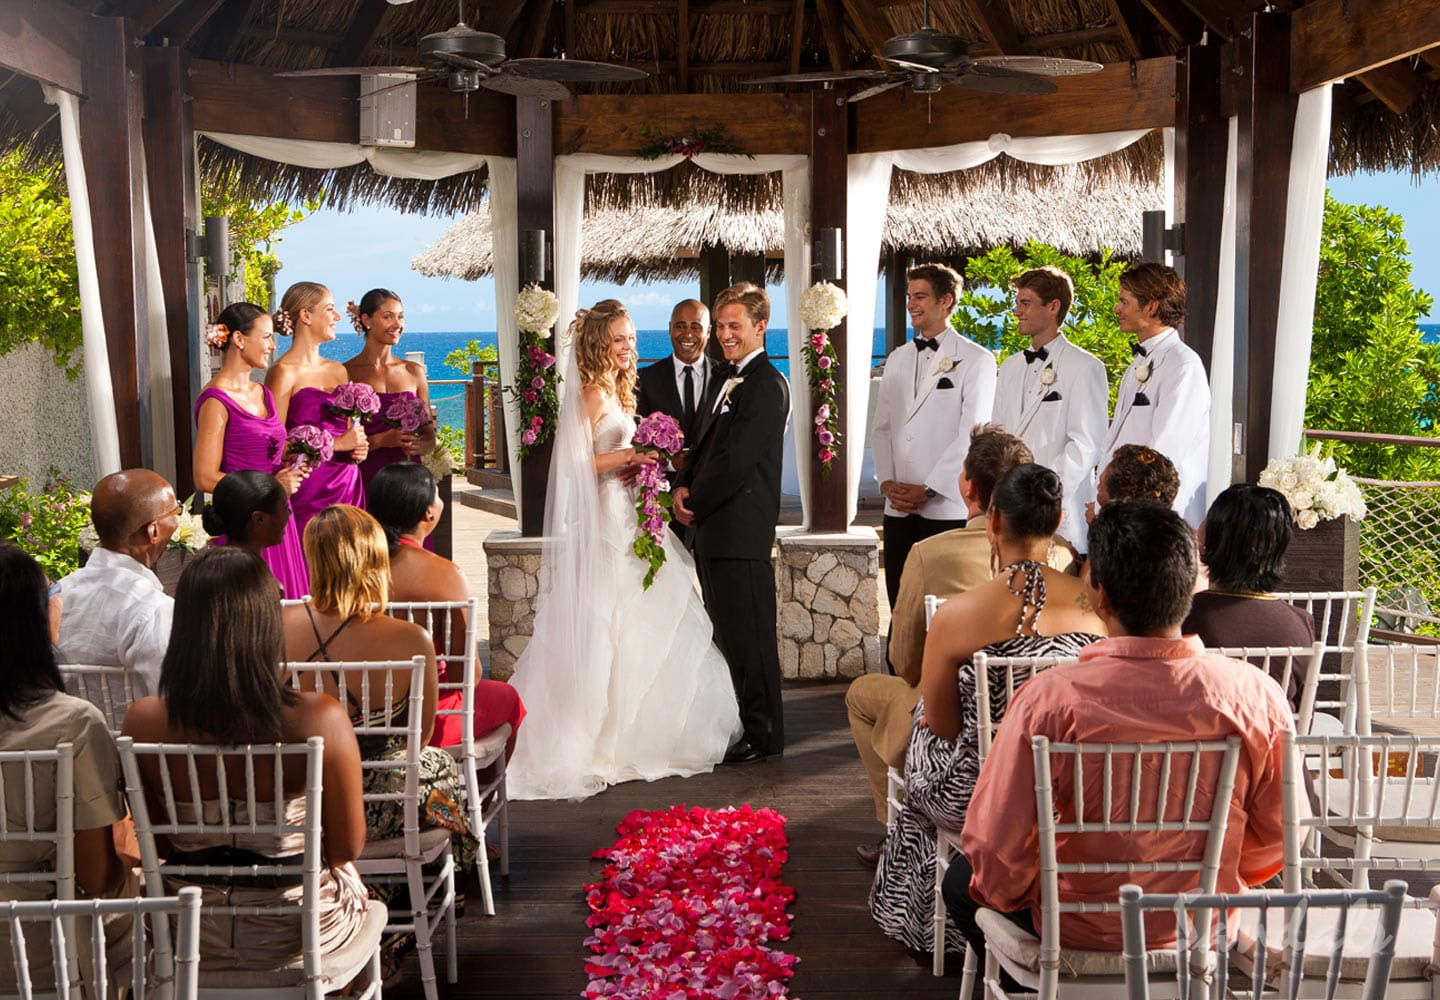 bride and groom with wedding guests in a wedding chapel at the sandals ochi beach resort in jamaica on their all inclusive group vacations trip